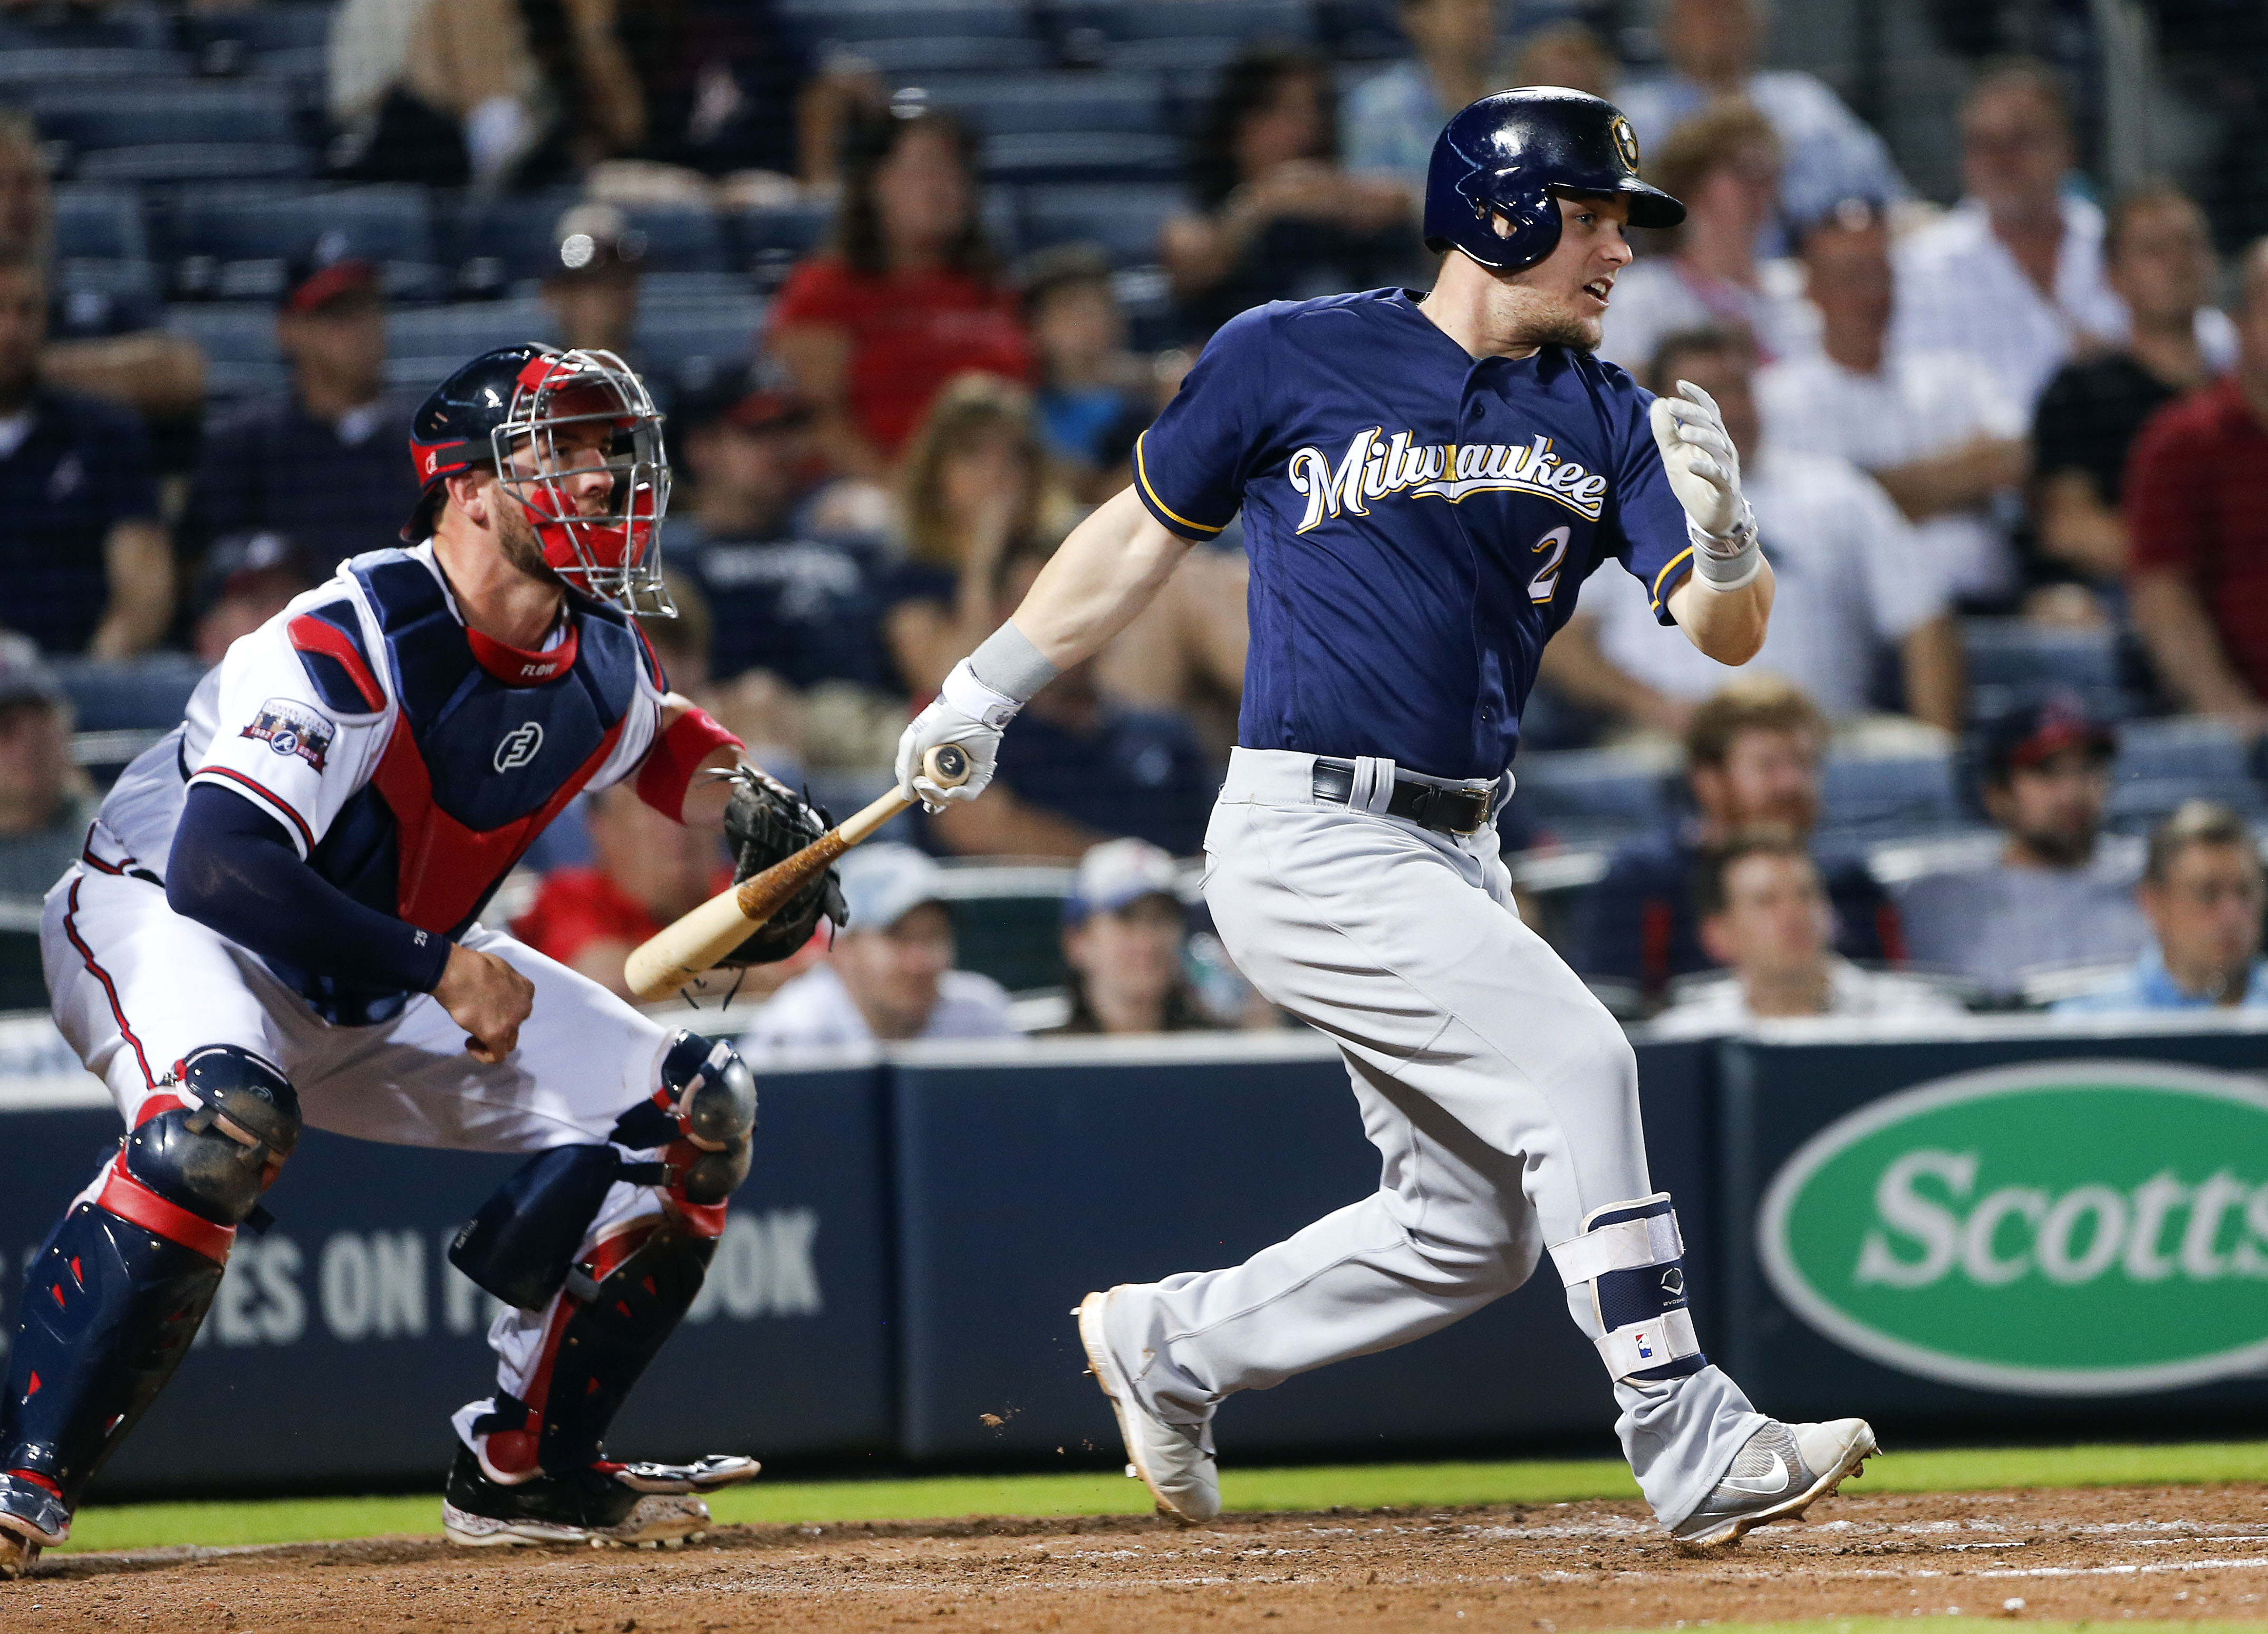 Milwaukee Brewers' Scooter Gennett (2) drives in the game-winning run with a base hit as Atlanta Braves catcher Tyler Flowers (25) looks on in the eighth inning of baseball game Tuesday, May 24, 2016, in Atlanta. (AP Photo/John Bazemore)